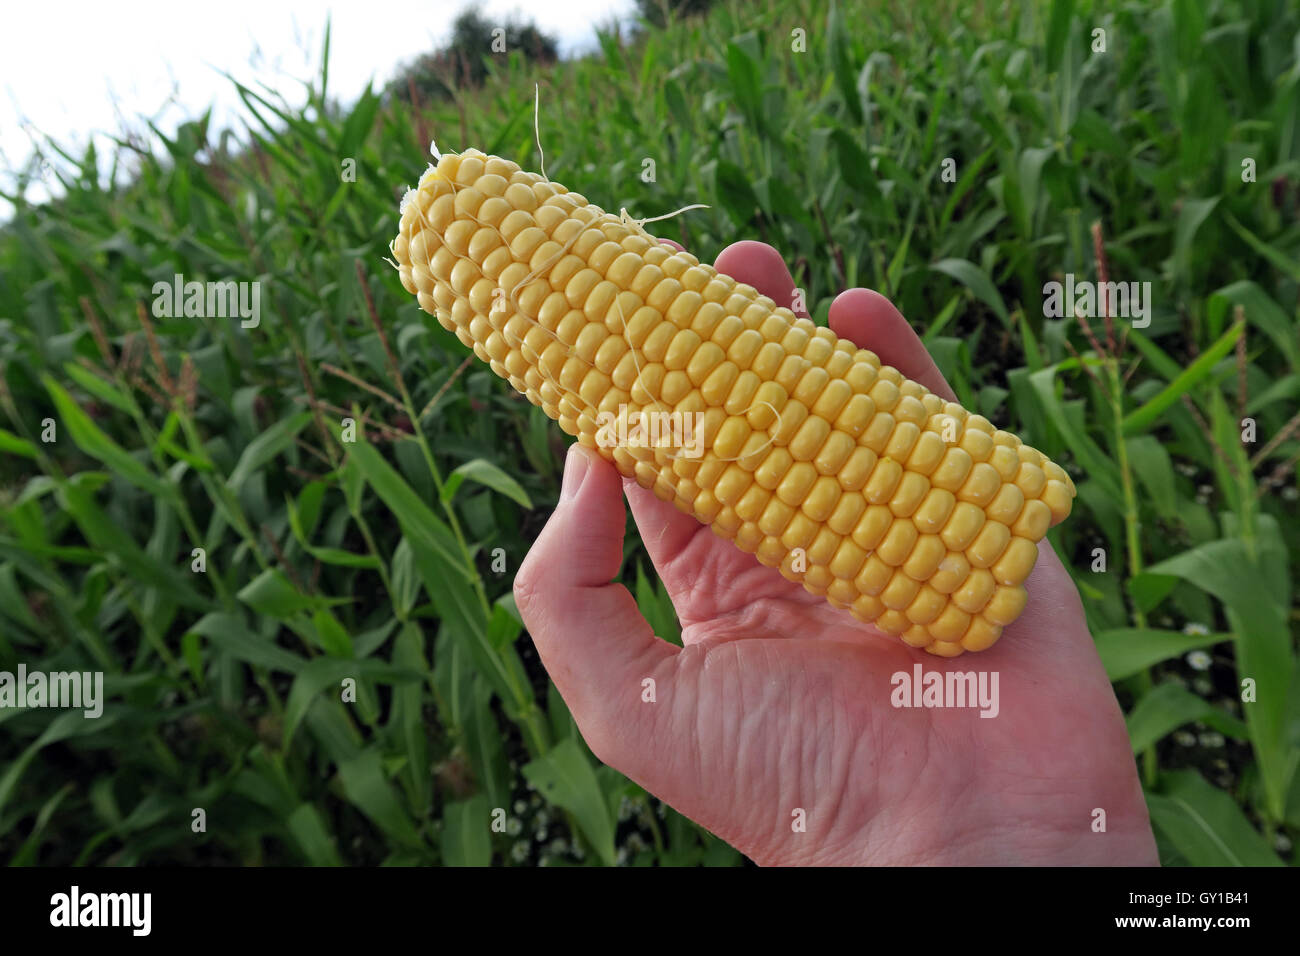 agriculture,farm,farming,England,UK,hand,hands,holding,yellow,close,macro,environmental,issue,farm,farmer,farming,vegetable,fruiting,holdin,holding,organic,produce,cob,ear,fresh,harvest,yellow,husk,ingredient,natural,nature,cultivated,ripe,Where does sweetcorn come from,How does corn grow,GoTonySmith,@HotpixUK,Tony,Smith,UK,GB,Great,Britain,United,Kingdom,English,British,popcorn,popping,August,close,up,closeup,cereal,cereals,oil,cornoil,environment,farm,field,food,fresh,freshness,golden,grain,green,hands,harvest,health,healthy,hold,ingredients,kernels,nature,nutrition,nutritious,raw,vitamin,yellow,lemon,5aday,five,5,aday,a,day,plant,plantation,planting,Buy Pictures of,Buy Images Of,Images of,Stock Images,Tony Smith,United Kingdom,Great Britain,Popping Corn,Corn oil,Where Food Comes from